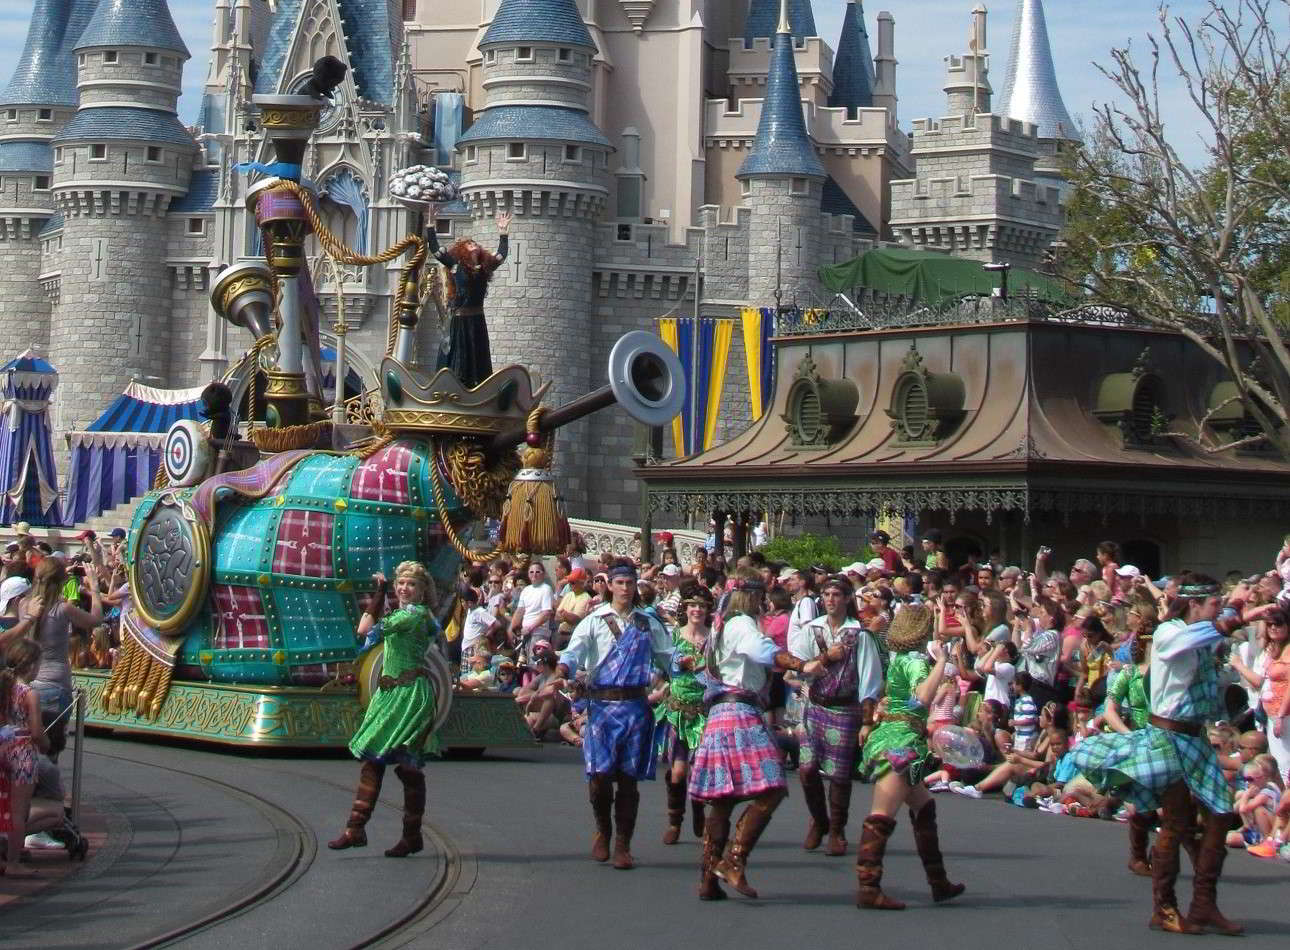 Brave   float featuring  Merida  in the  Festival of Fantasy Parade  in the  Magic Kingdom  at  Disney World .